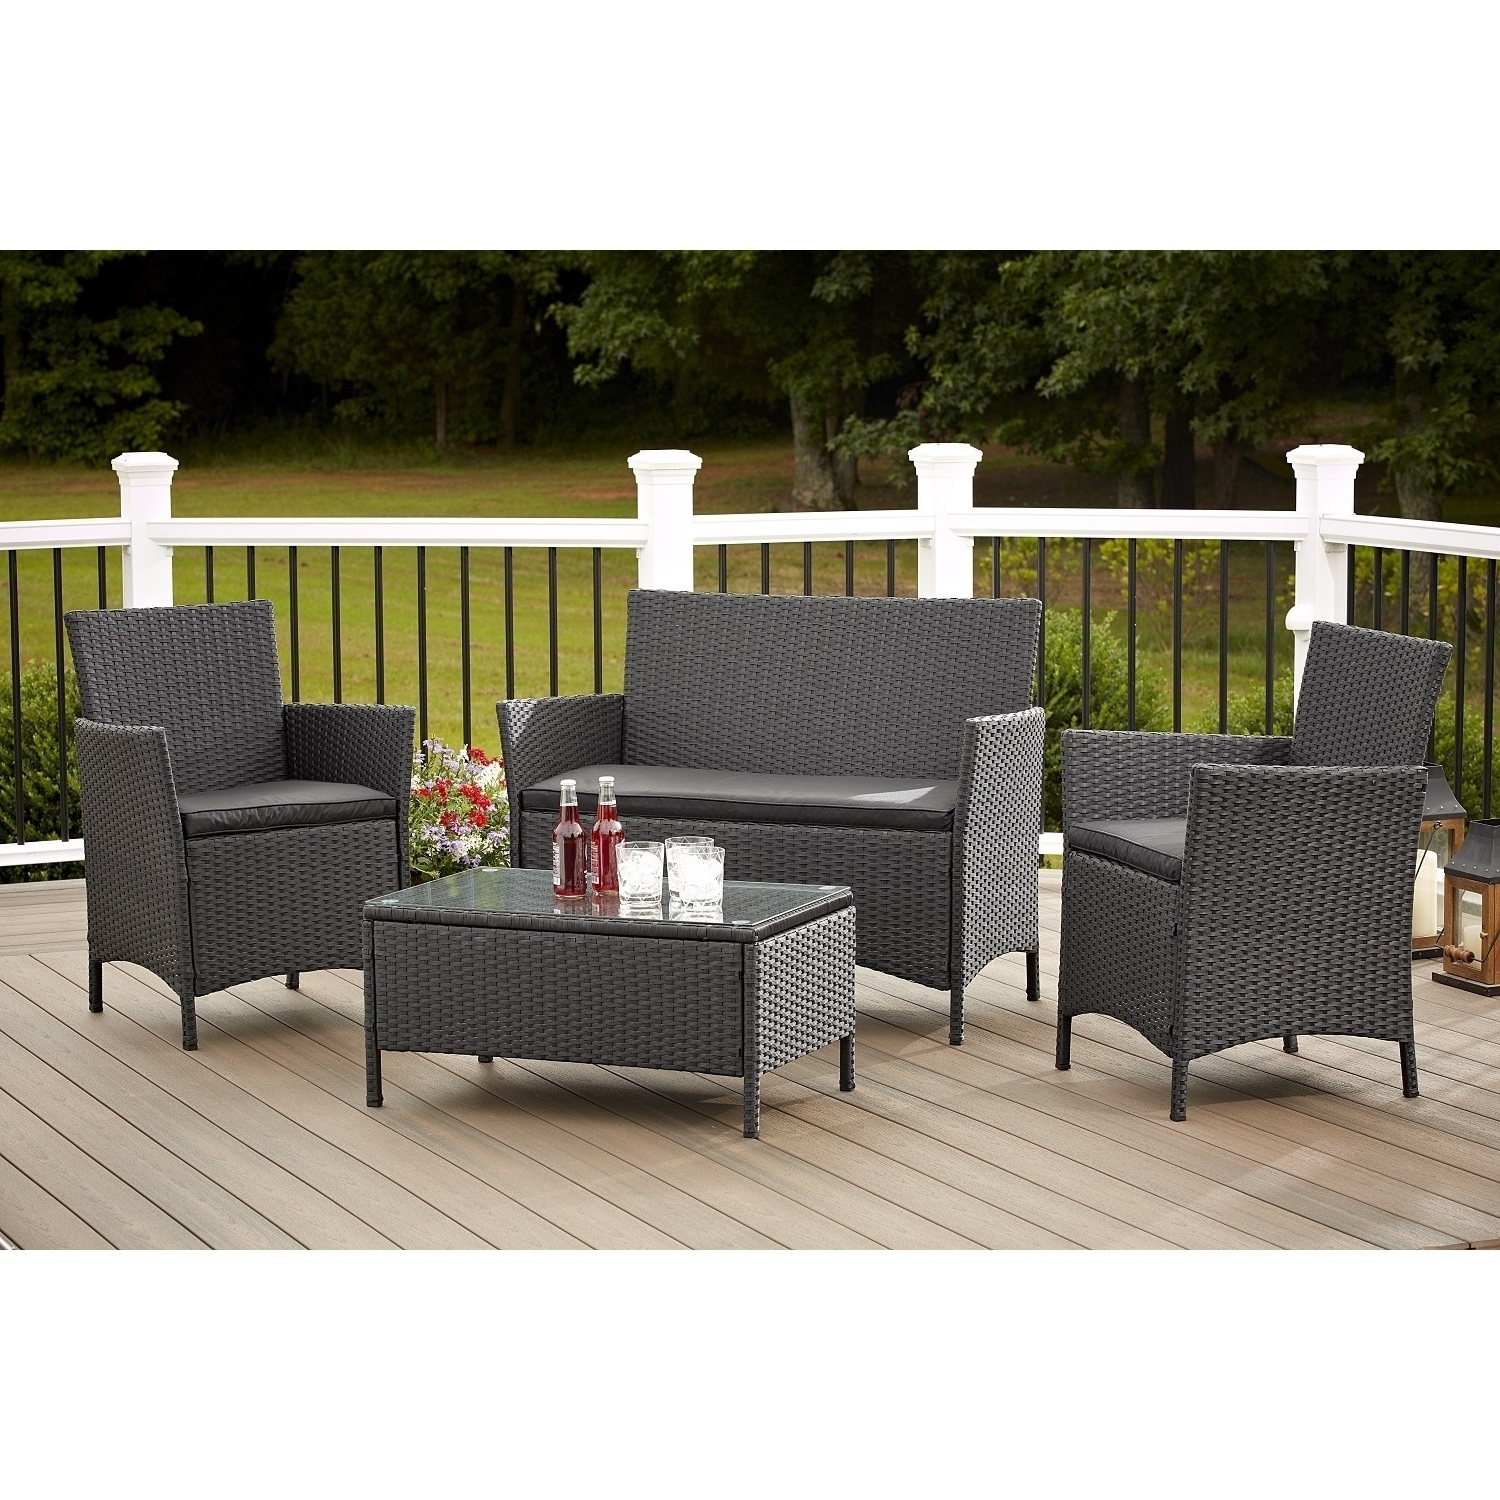 Widely Used Wicker 4Pc Patio Conversation Sets With Navy Cushions Throughout Shop Avenue Greene 4 Piece Resin Wicker Deep Seating Patio (View 14 of 15)